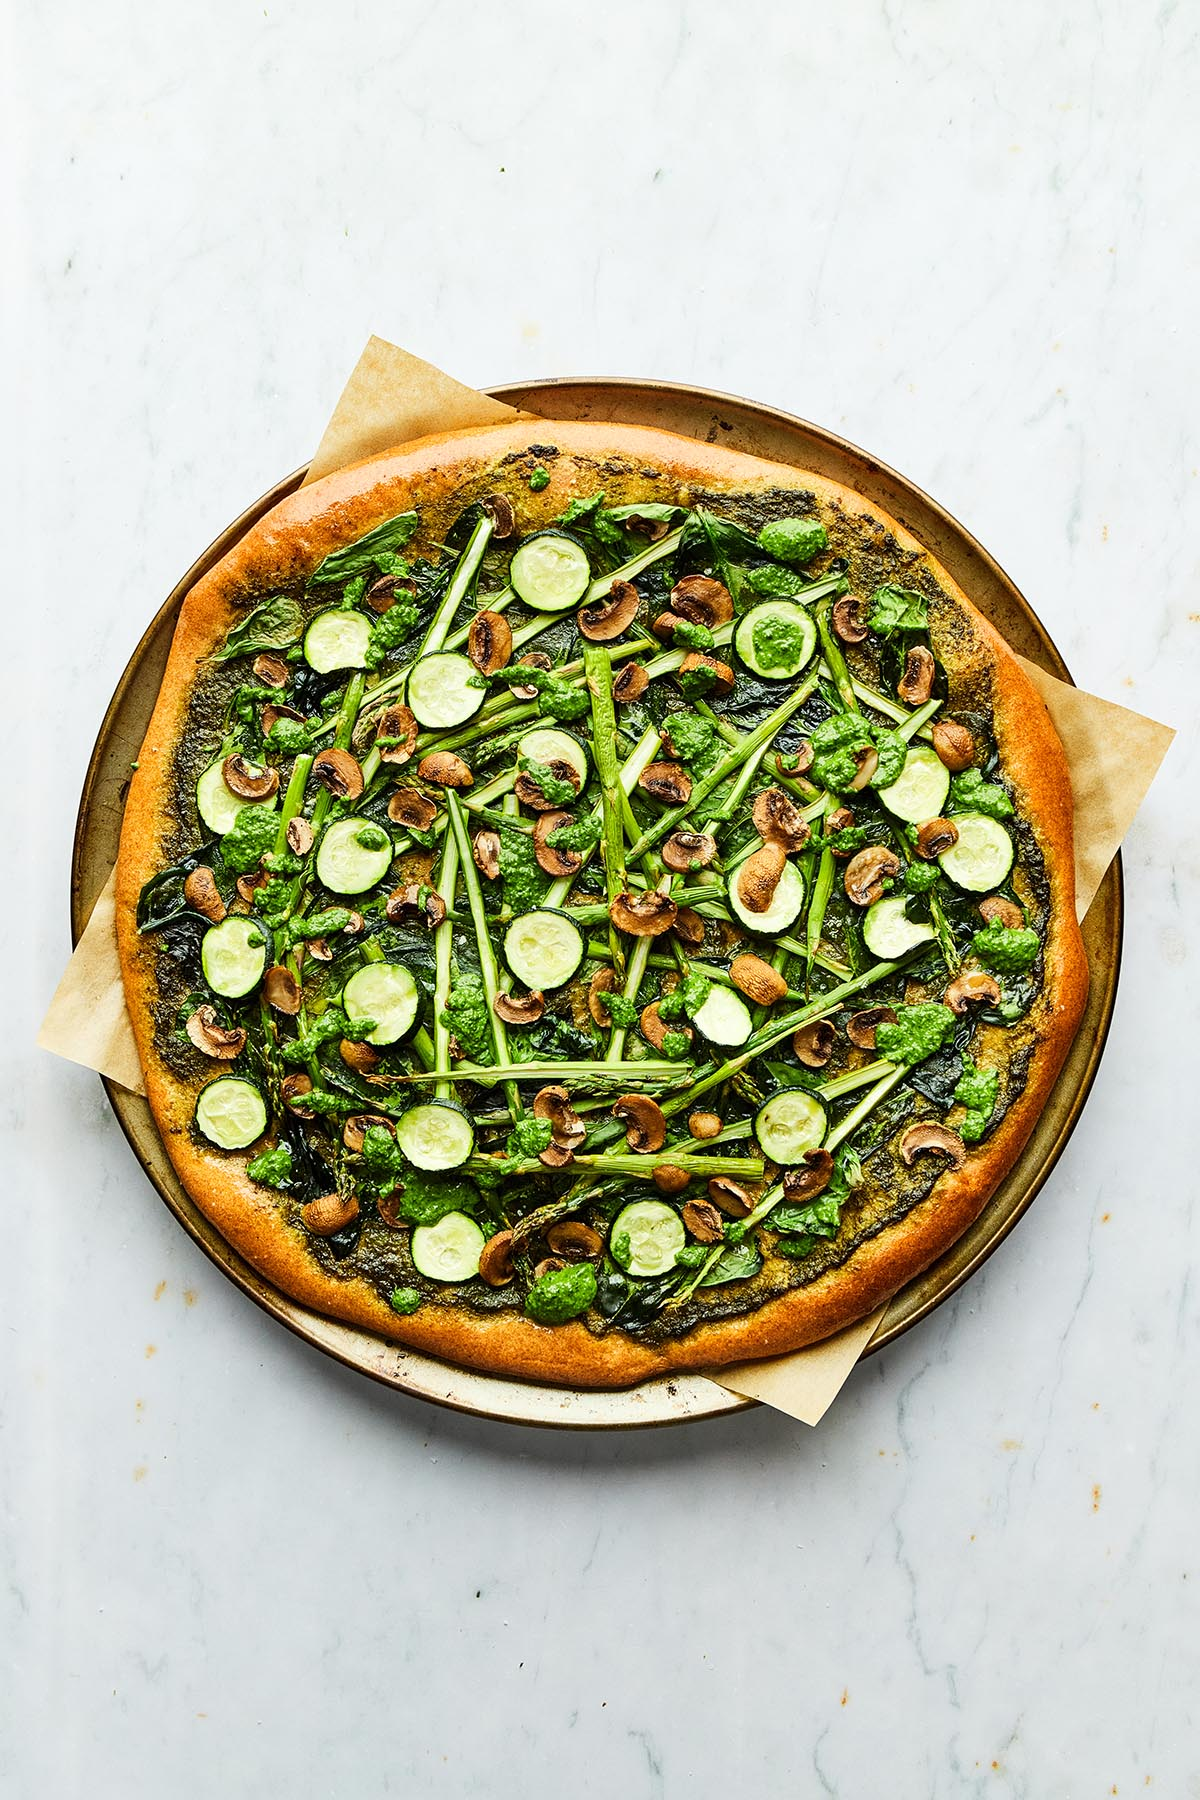 A fully baked spring pesto pizza on a round baking tray lined with parchment paper.